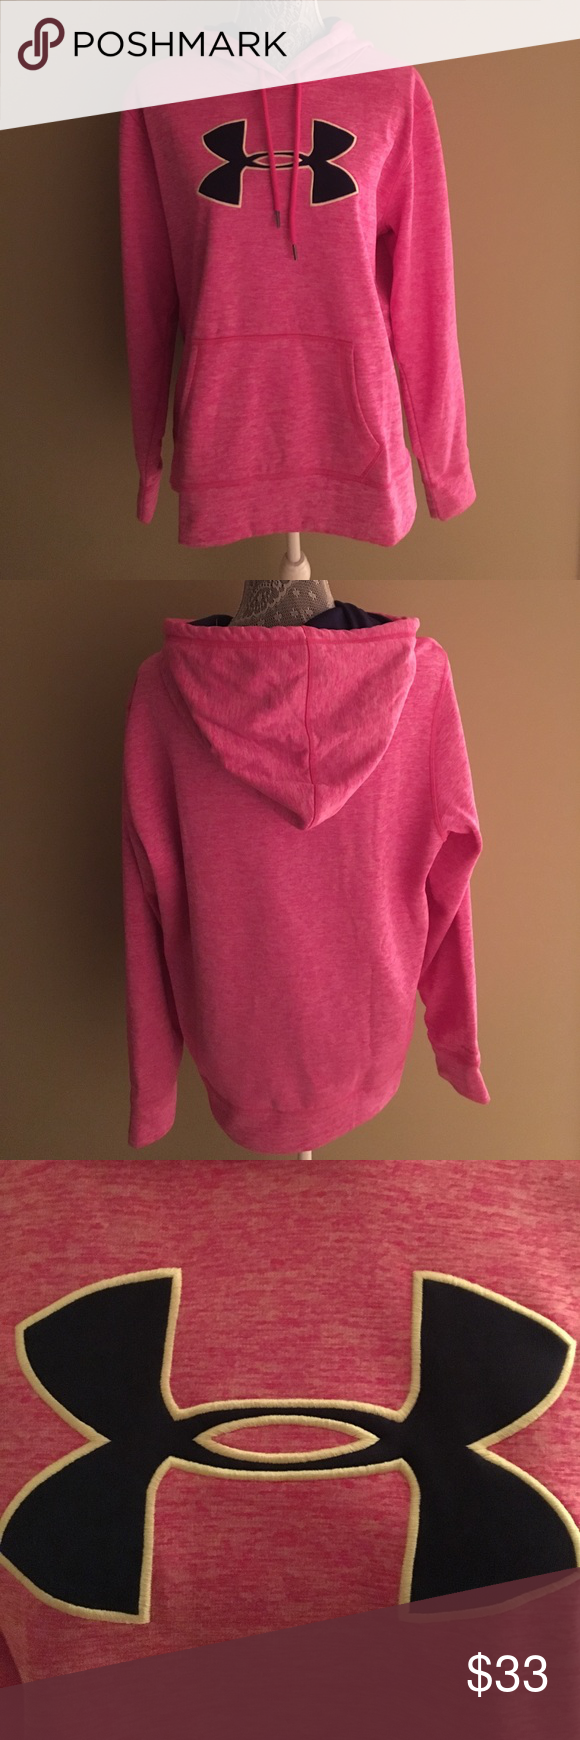 NWT Under Armour Hoodie NWT Under Armour Hoodie. Pink and white w/navy logo. Size XL Under Armour Tops Sweatshirts & Hoodies